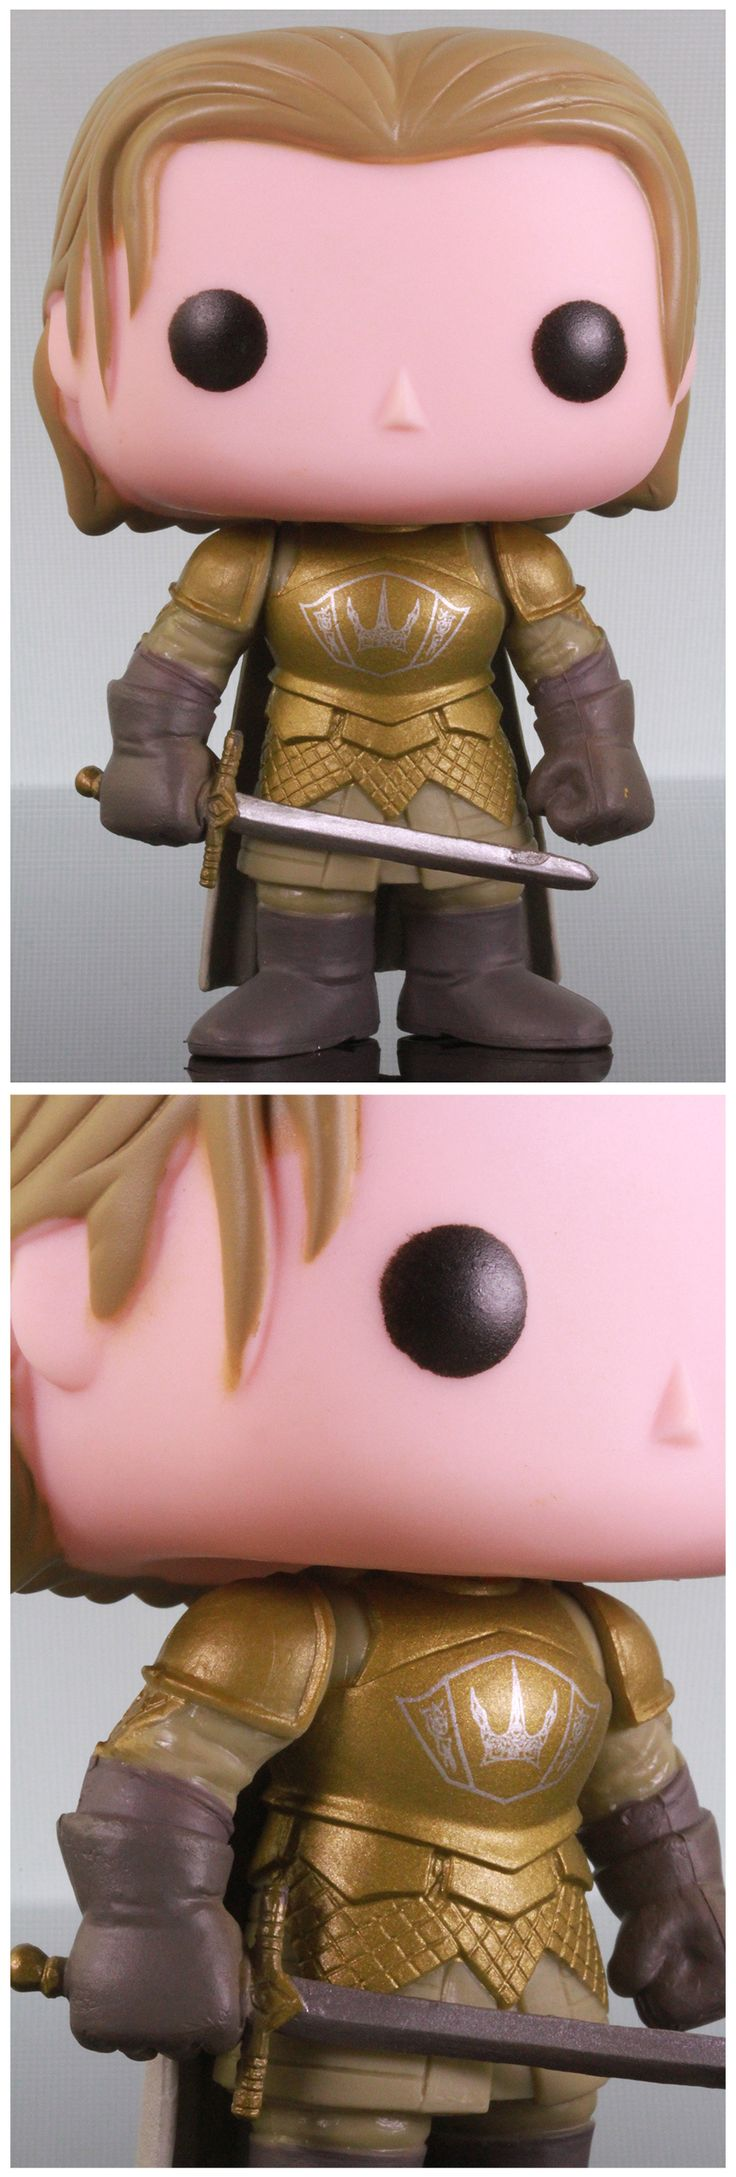 With intentions for killing his own king unknown, the Kingslayer  was found chillin' on the Iron Throne when Ned rolled into King's Landing. Game of Thrones King's Guard Jaime Lannister Funko Pop 10